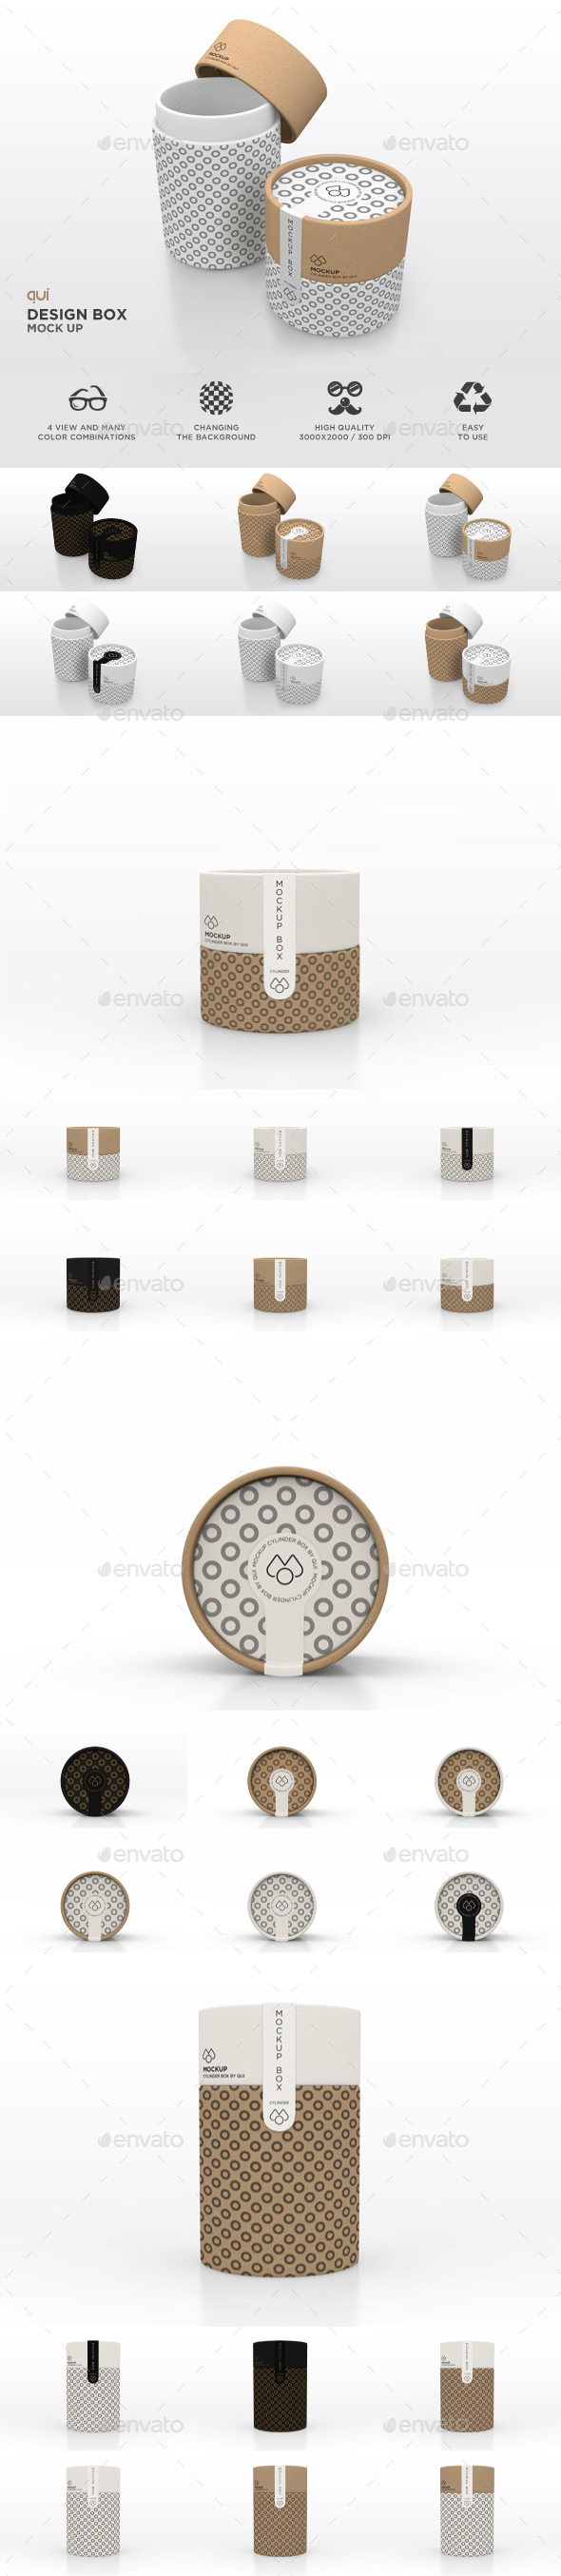 Packaging Mock Up - Paper Carton Tube - Packaging Product Mock-Ups